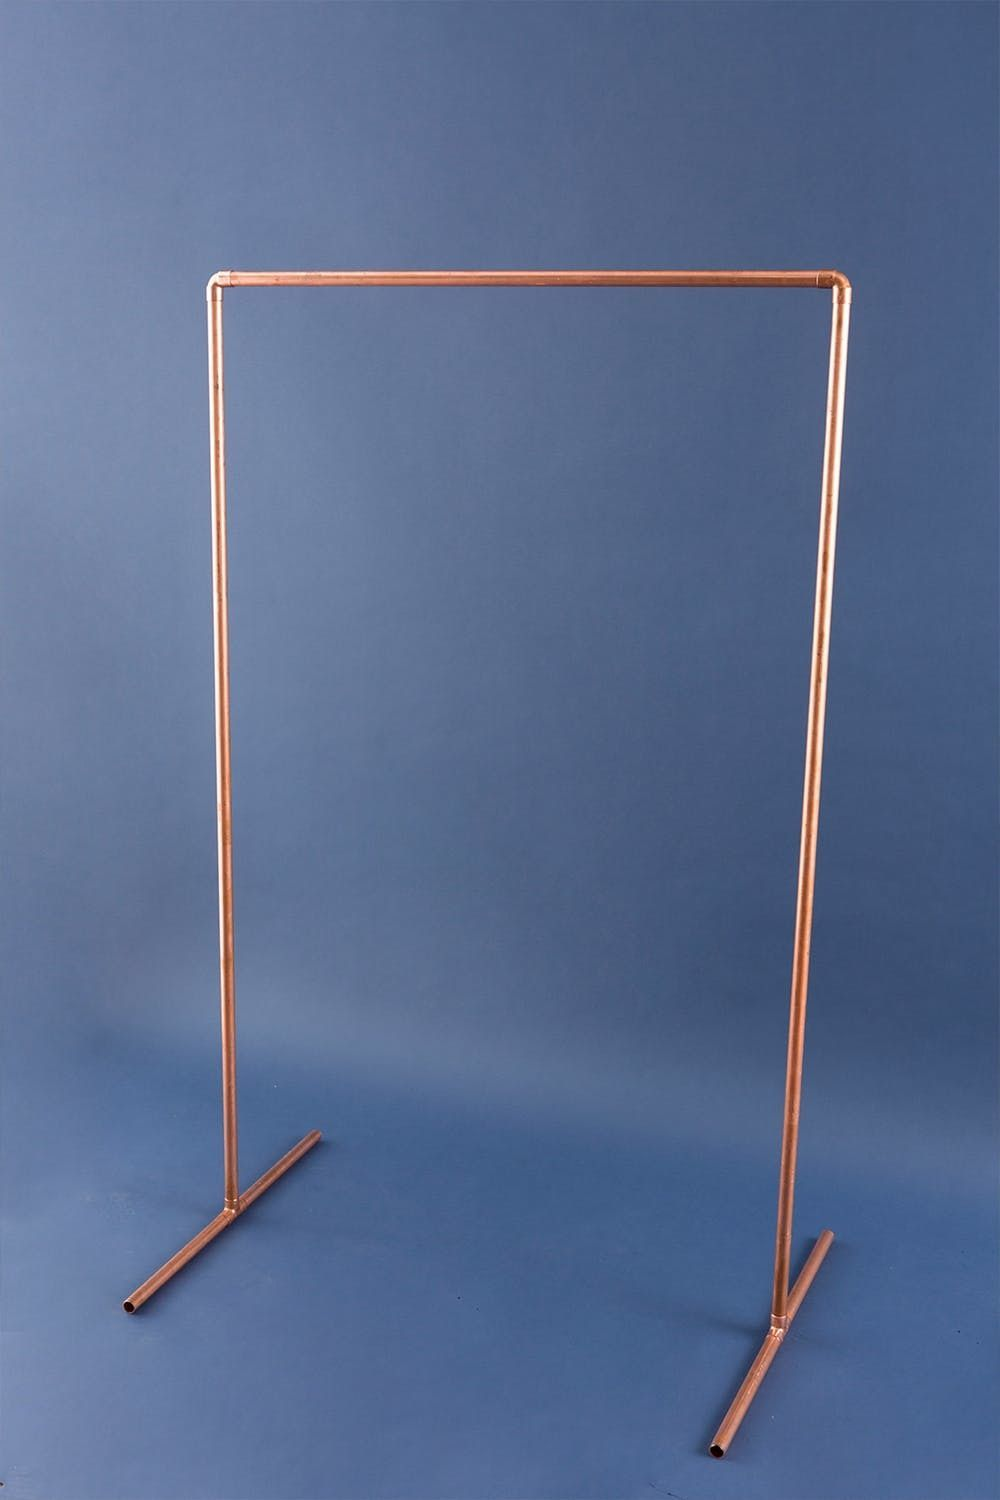 DIY This Copper Pipe Wardrobe in 15 Minutes